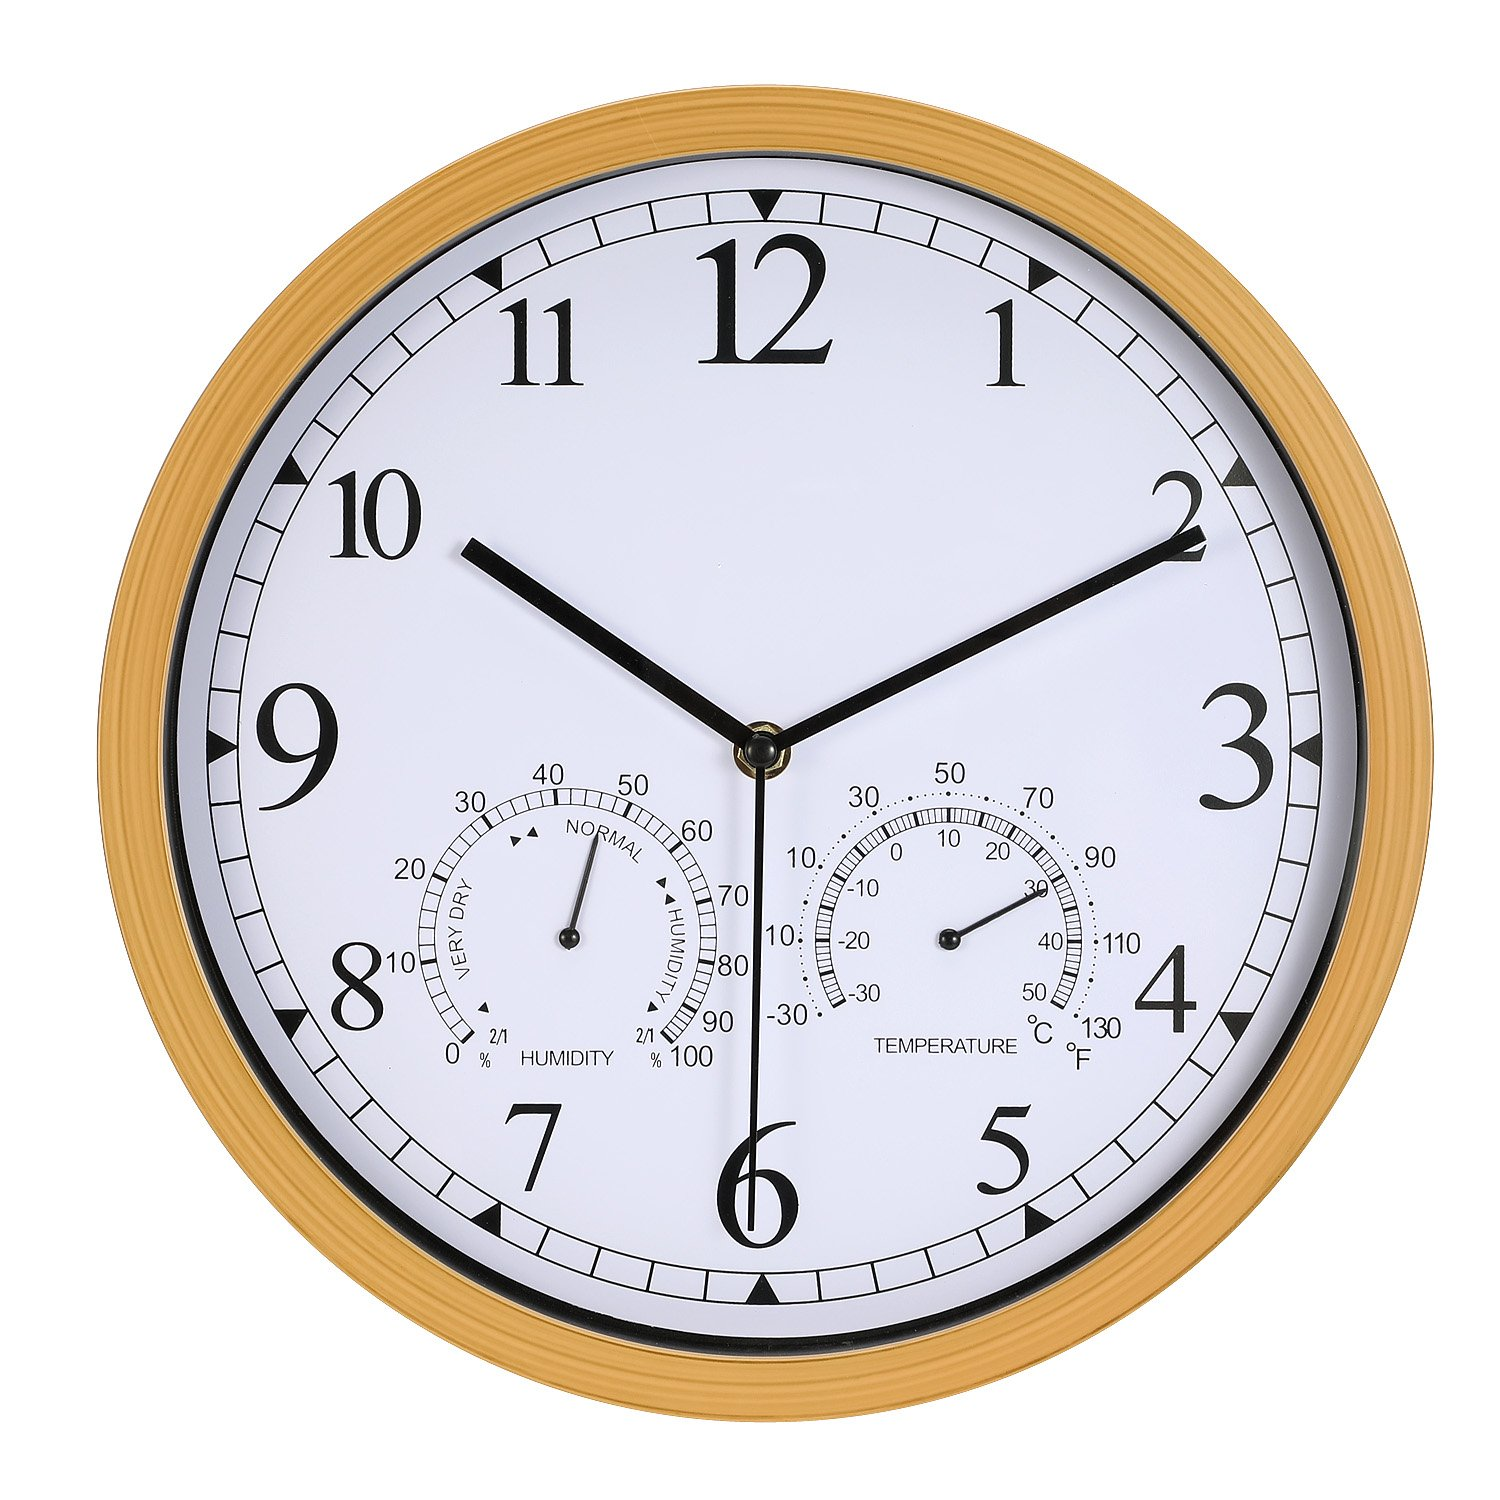 Genbaly 12 Inch Indoor/Outdoor Modern Wall Clock with Temperature & Humidity, Silent Non Ticking Round Wall Clock Home Decor with Arabic Numerals by Genbaly